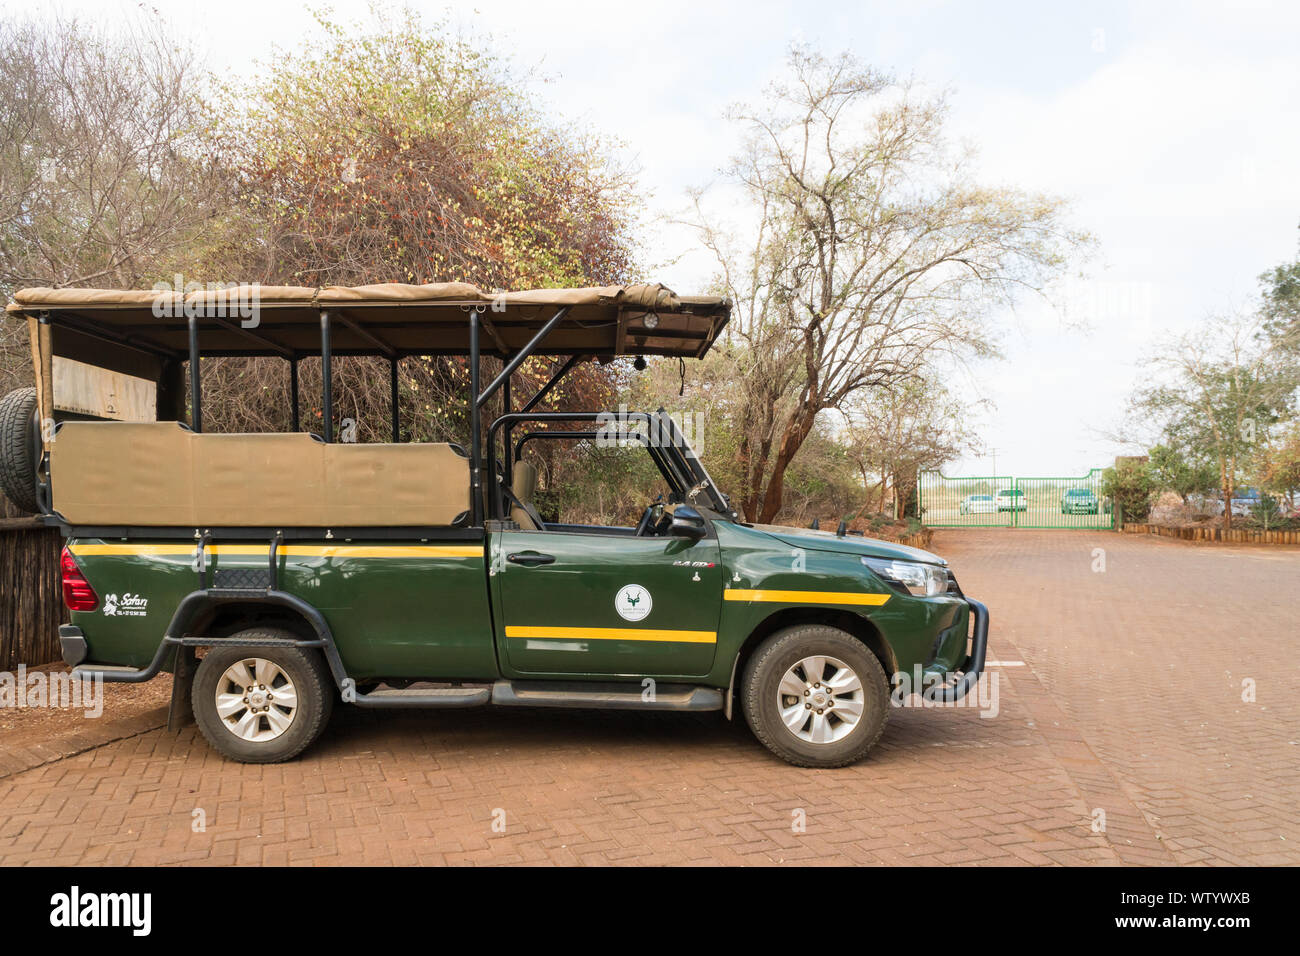 South African National Parks, SANParks safari or game drive vehicle or truck parked at Crocodile Bridge rest camp in Kruger National Park,South Africa Stock Photo